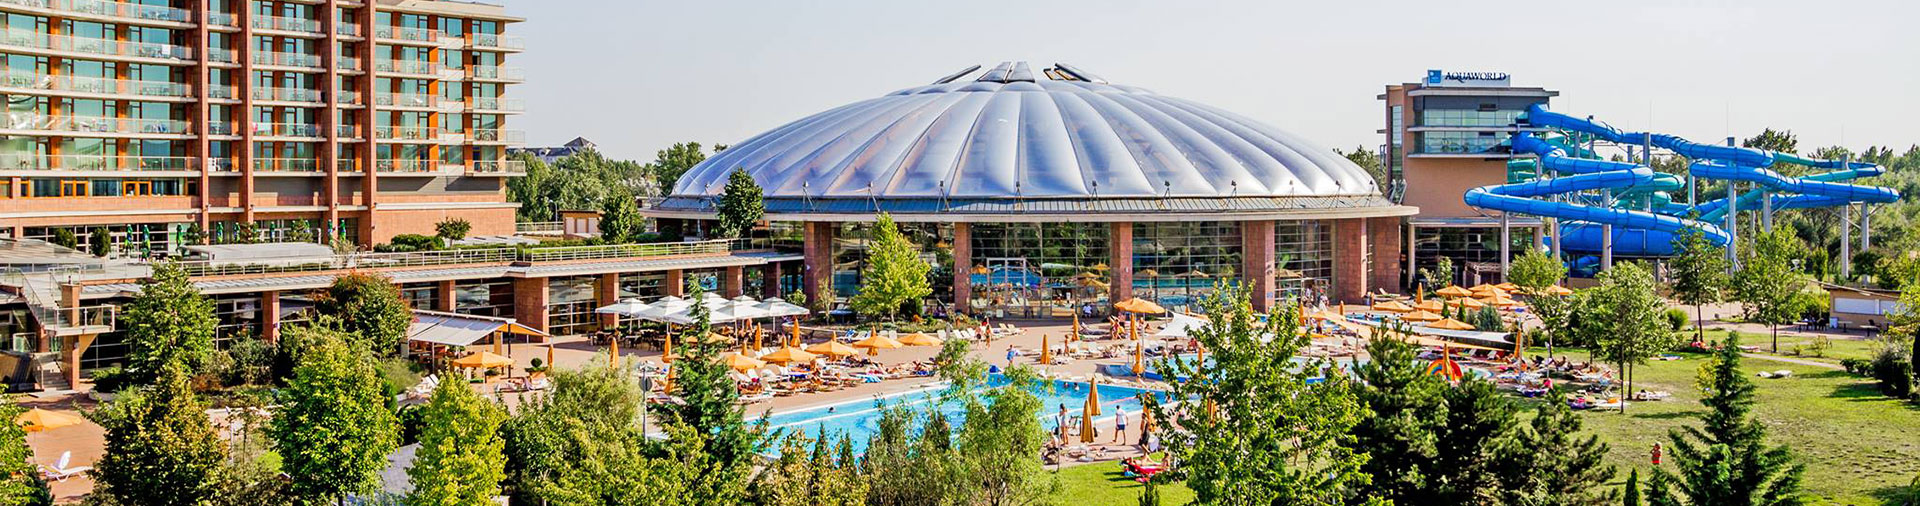 Aquaworld Budimpešta